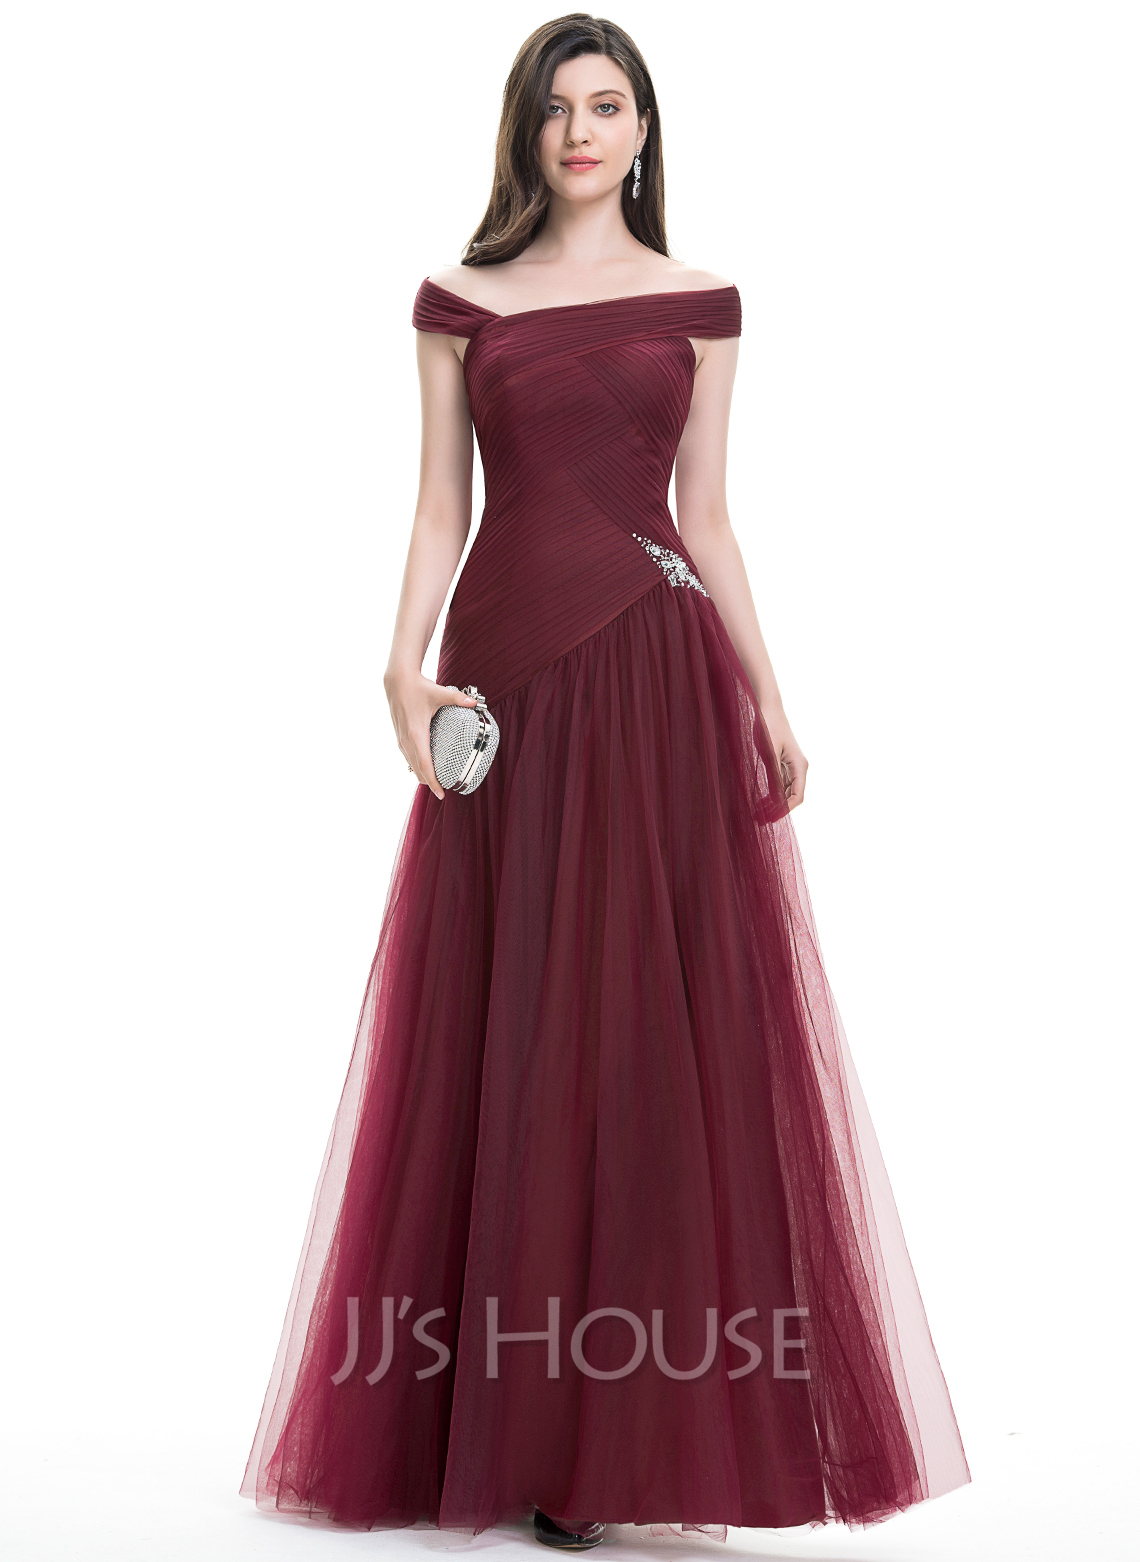 d474bfdbde A-Line/Princess Off-the-Shoulder Floor-Length Tulle Prom Dresses. Loading  zoom